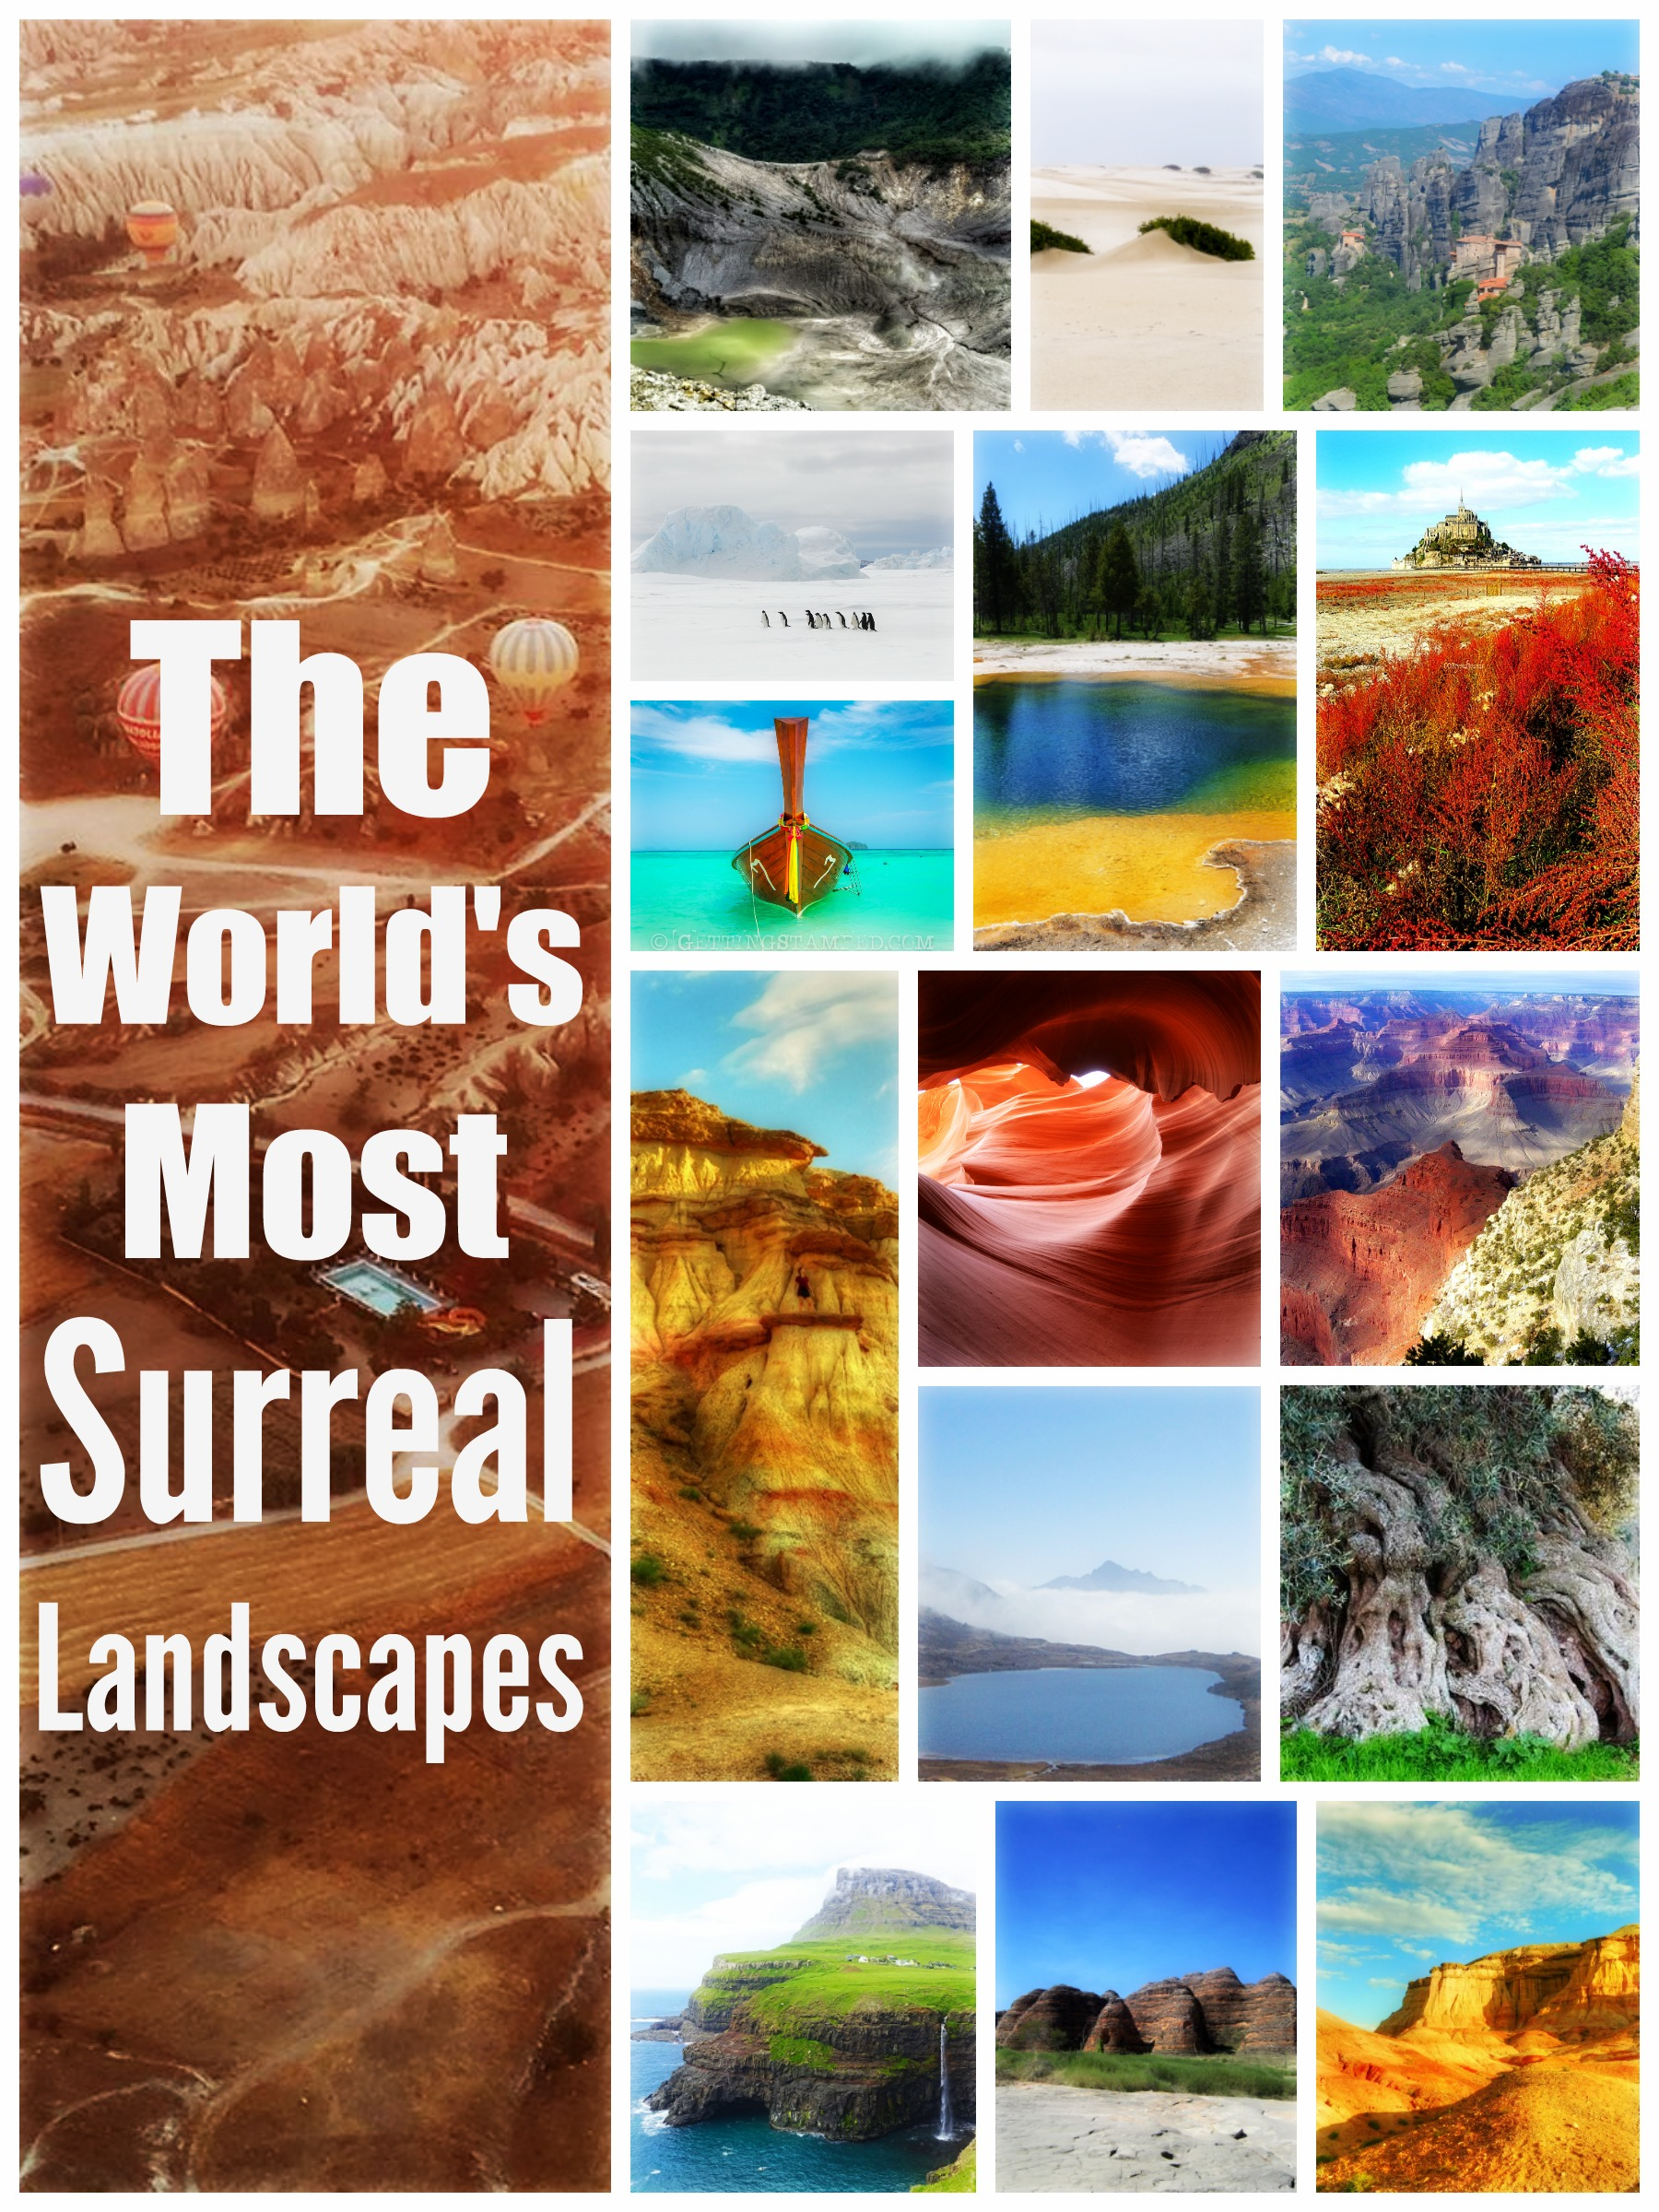 The Worlds Most Surreal Landscapes - 25 breathtaking surreal landscapes here on earth